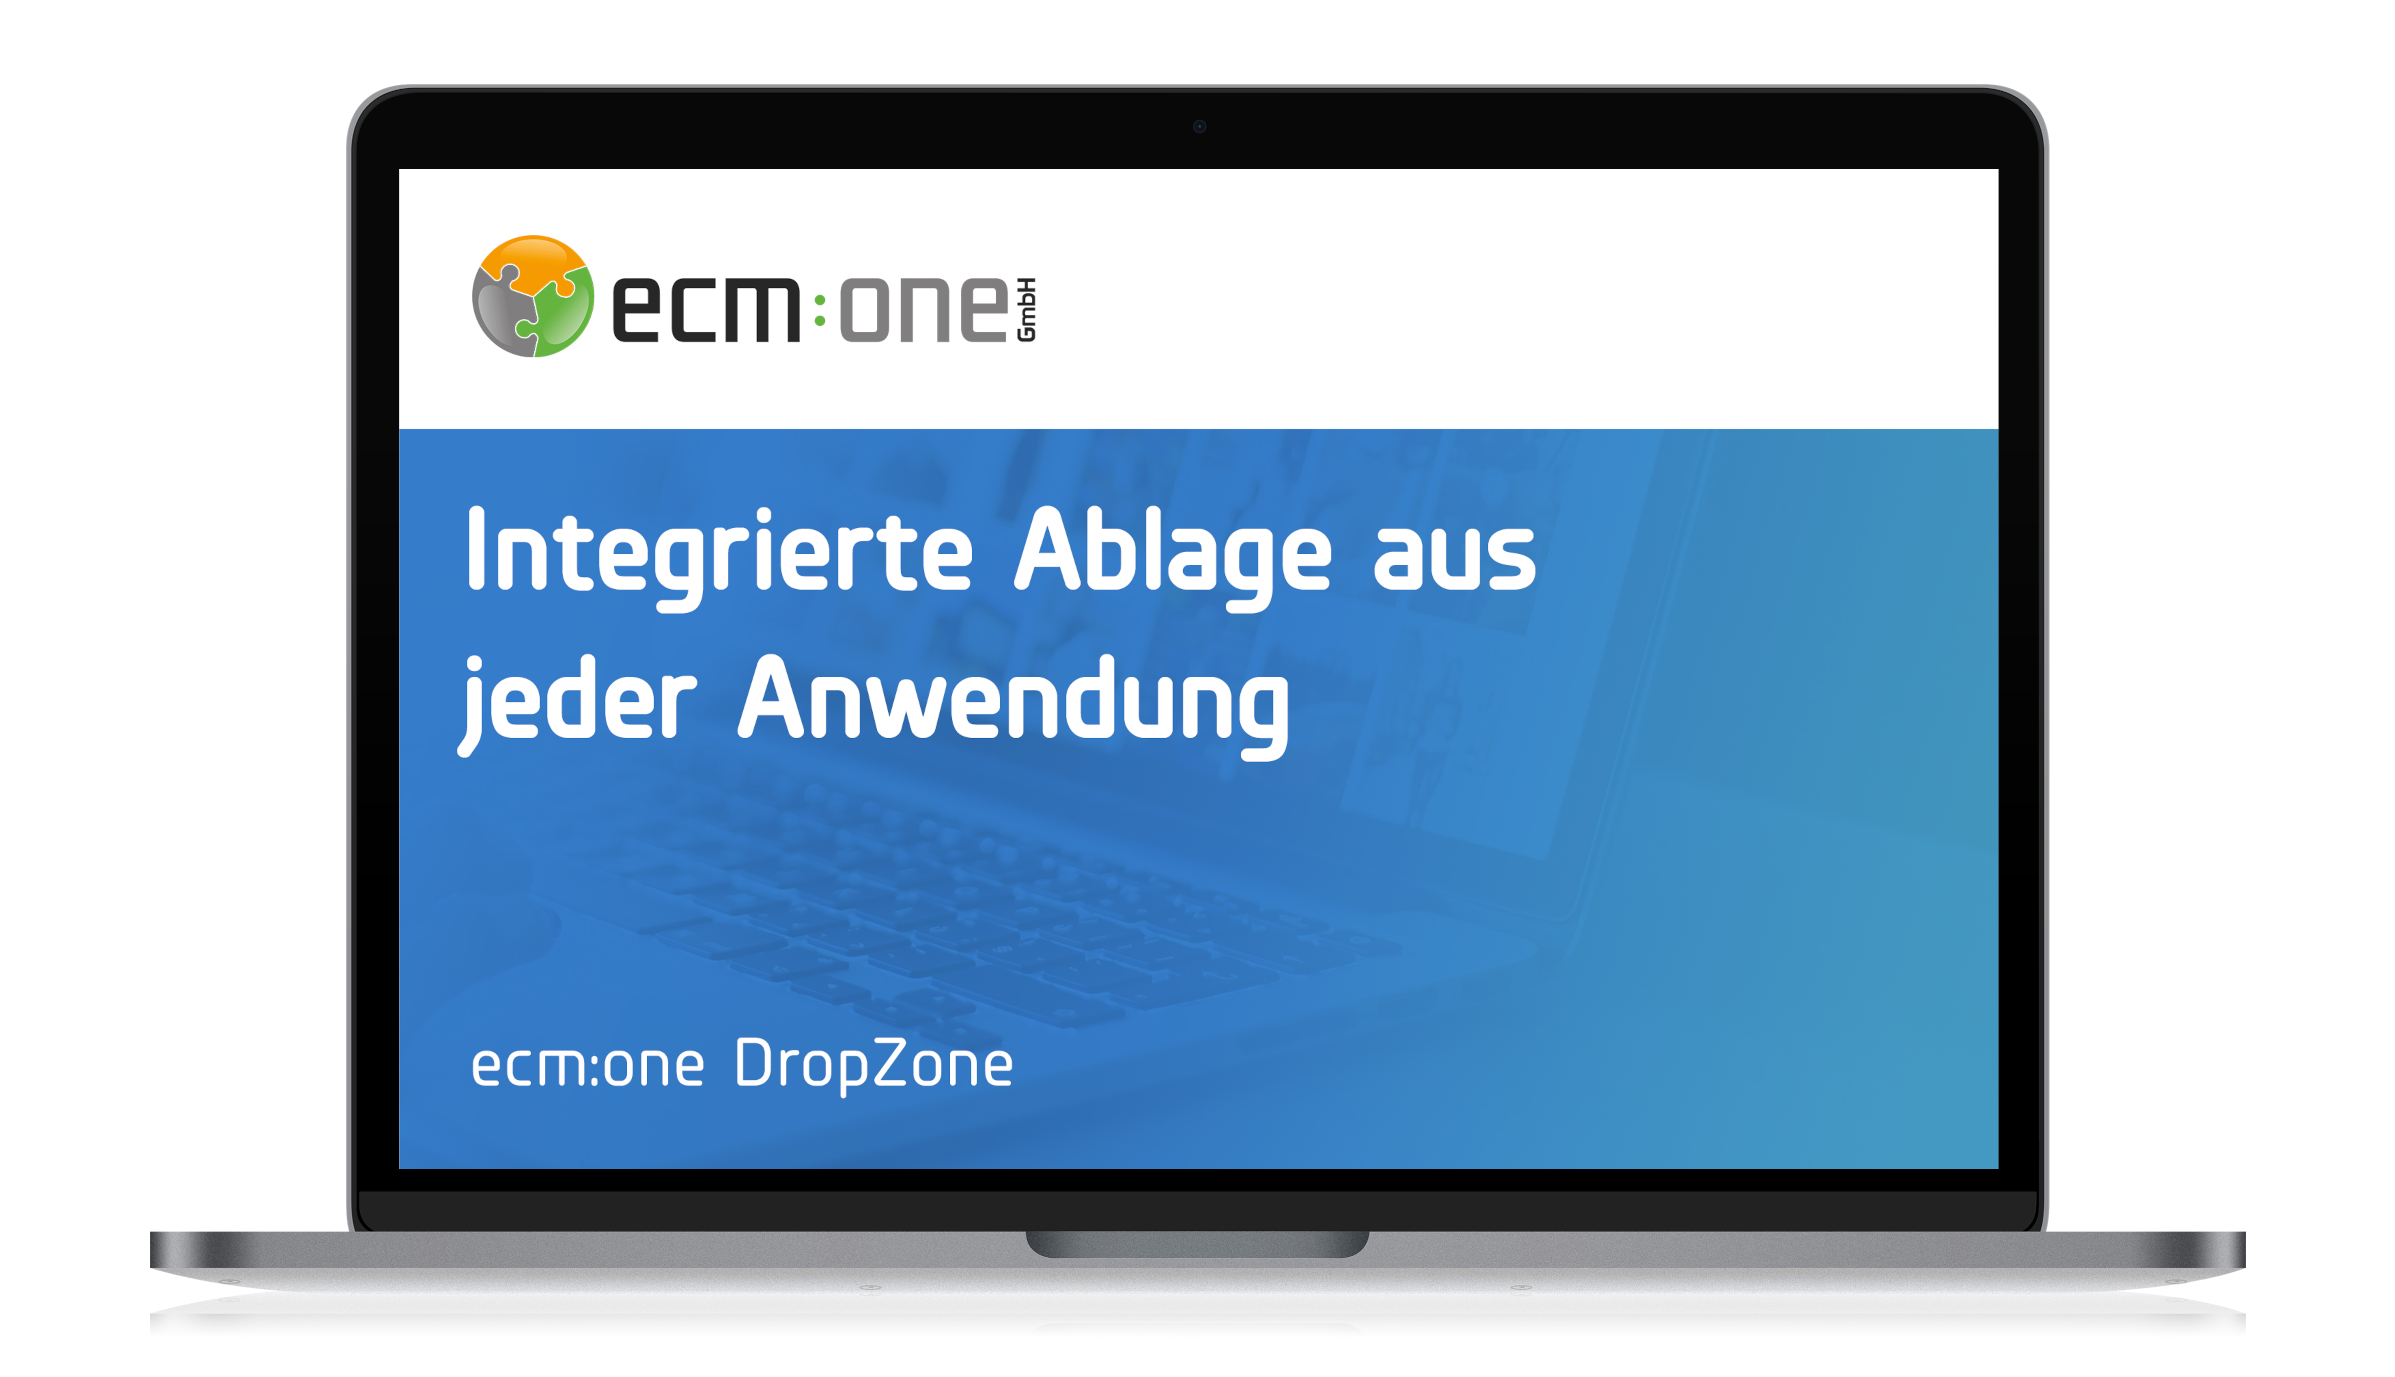 ecm:one DropZone